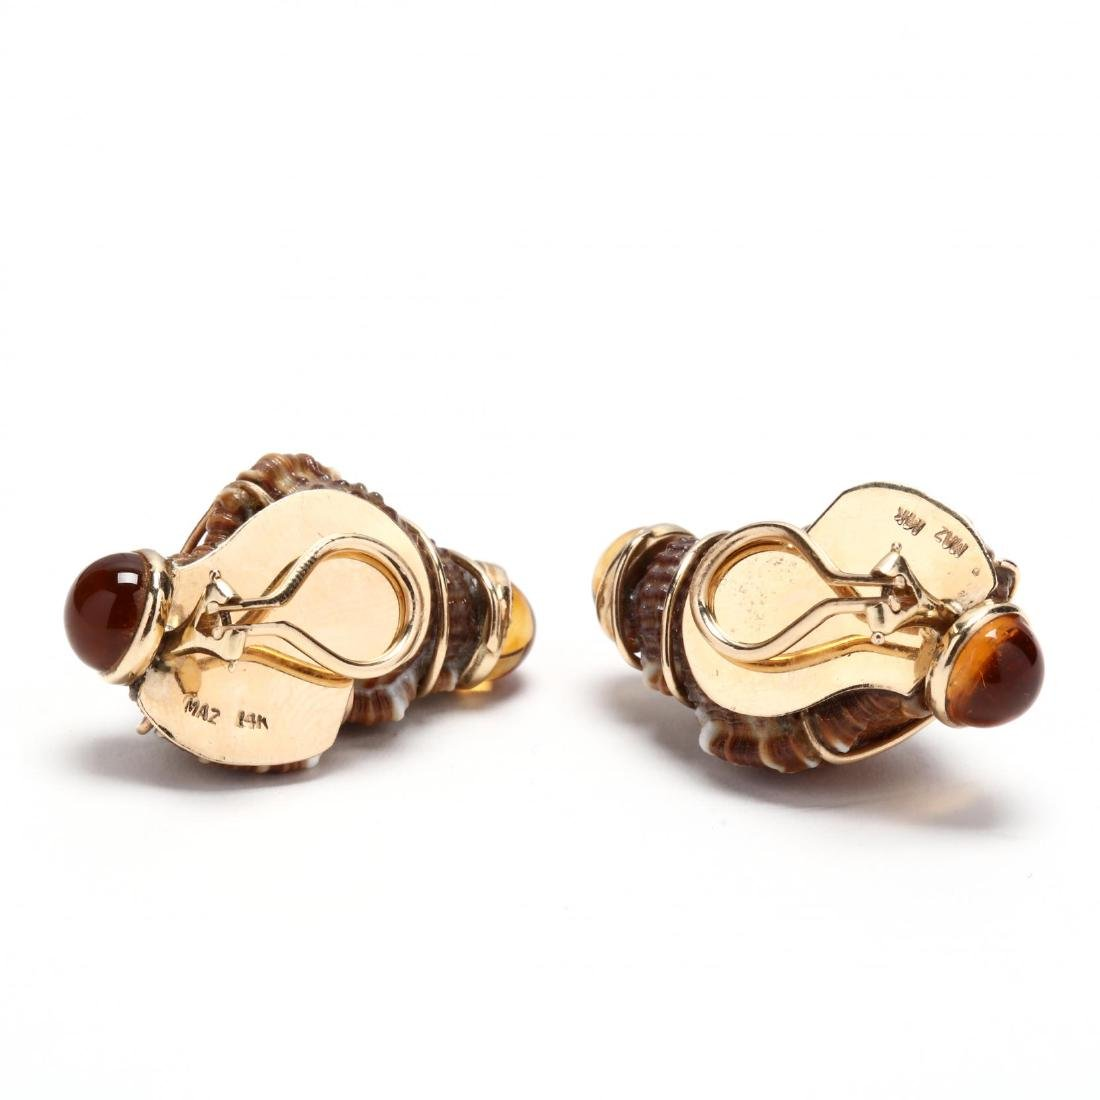 14KT Gold, Shell, and Citrine Ear Clips, MAZ - 2